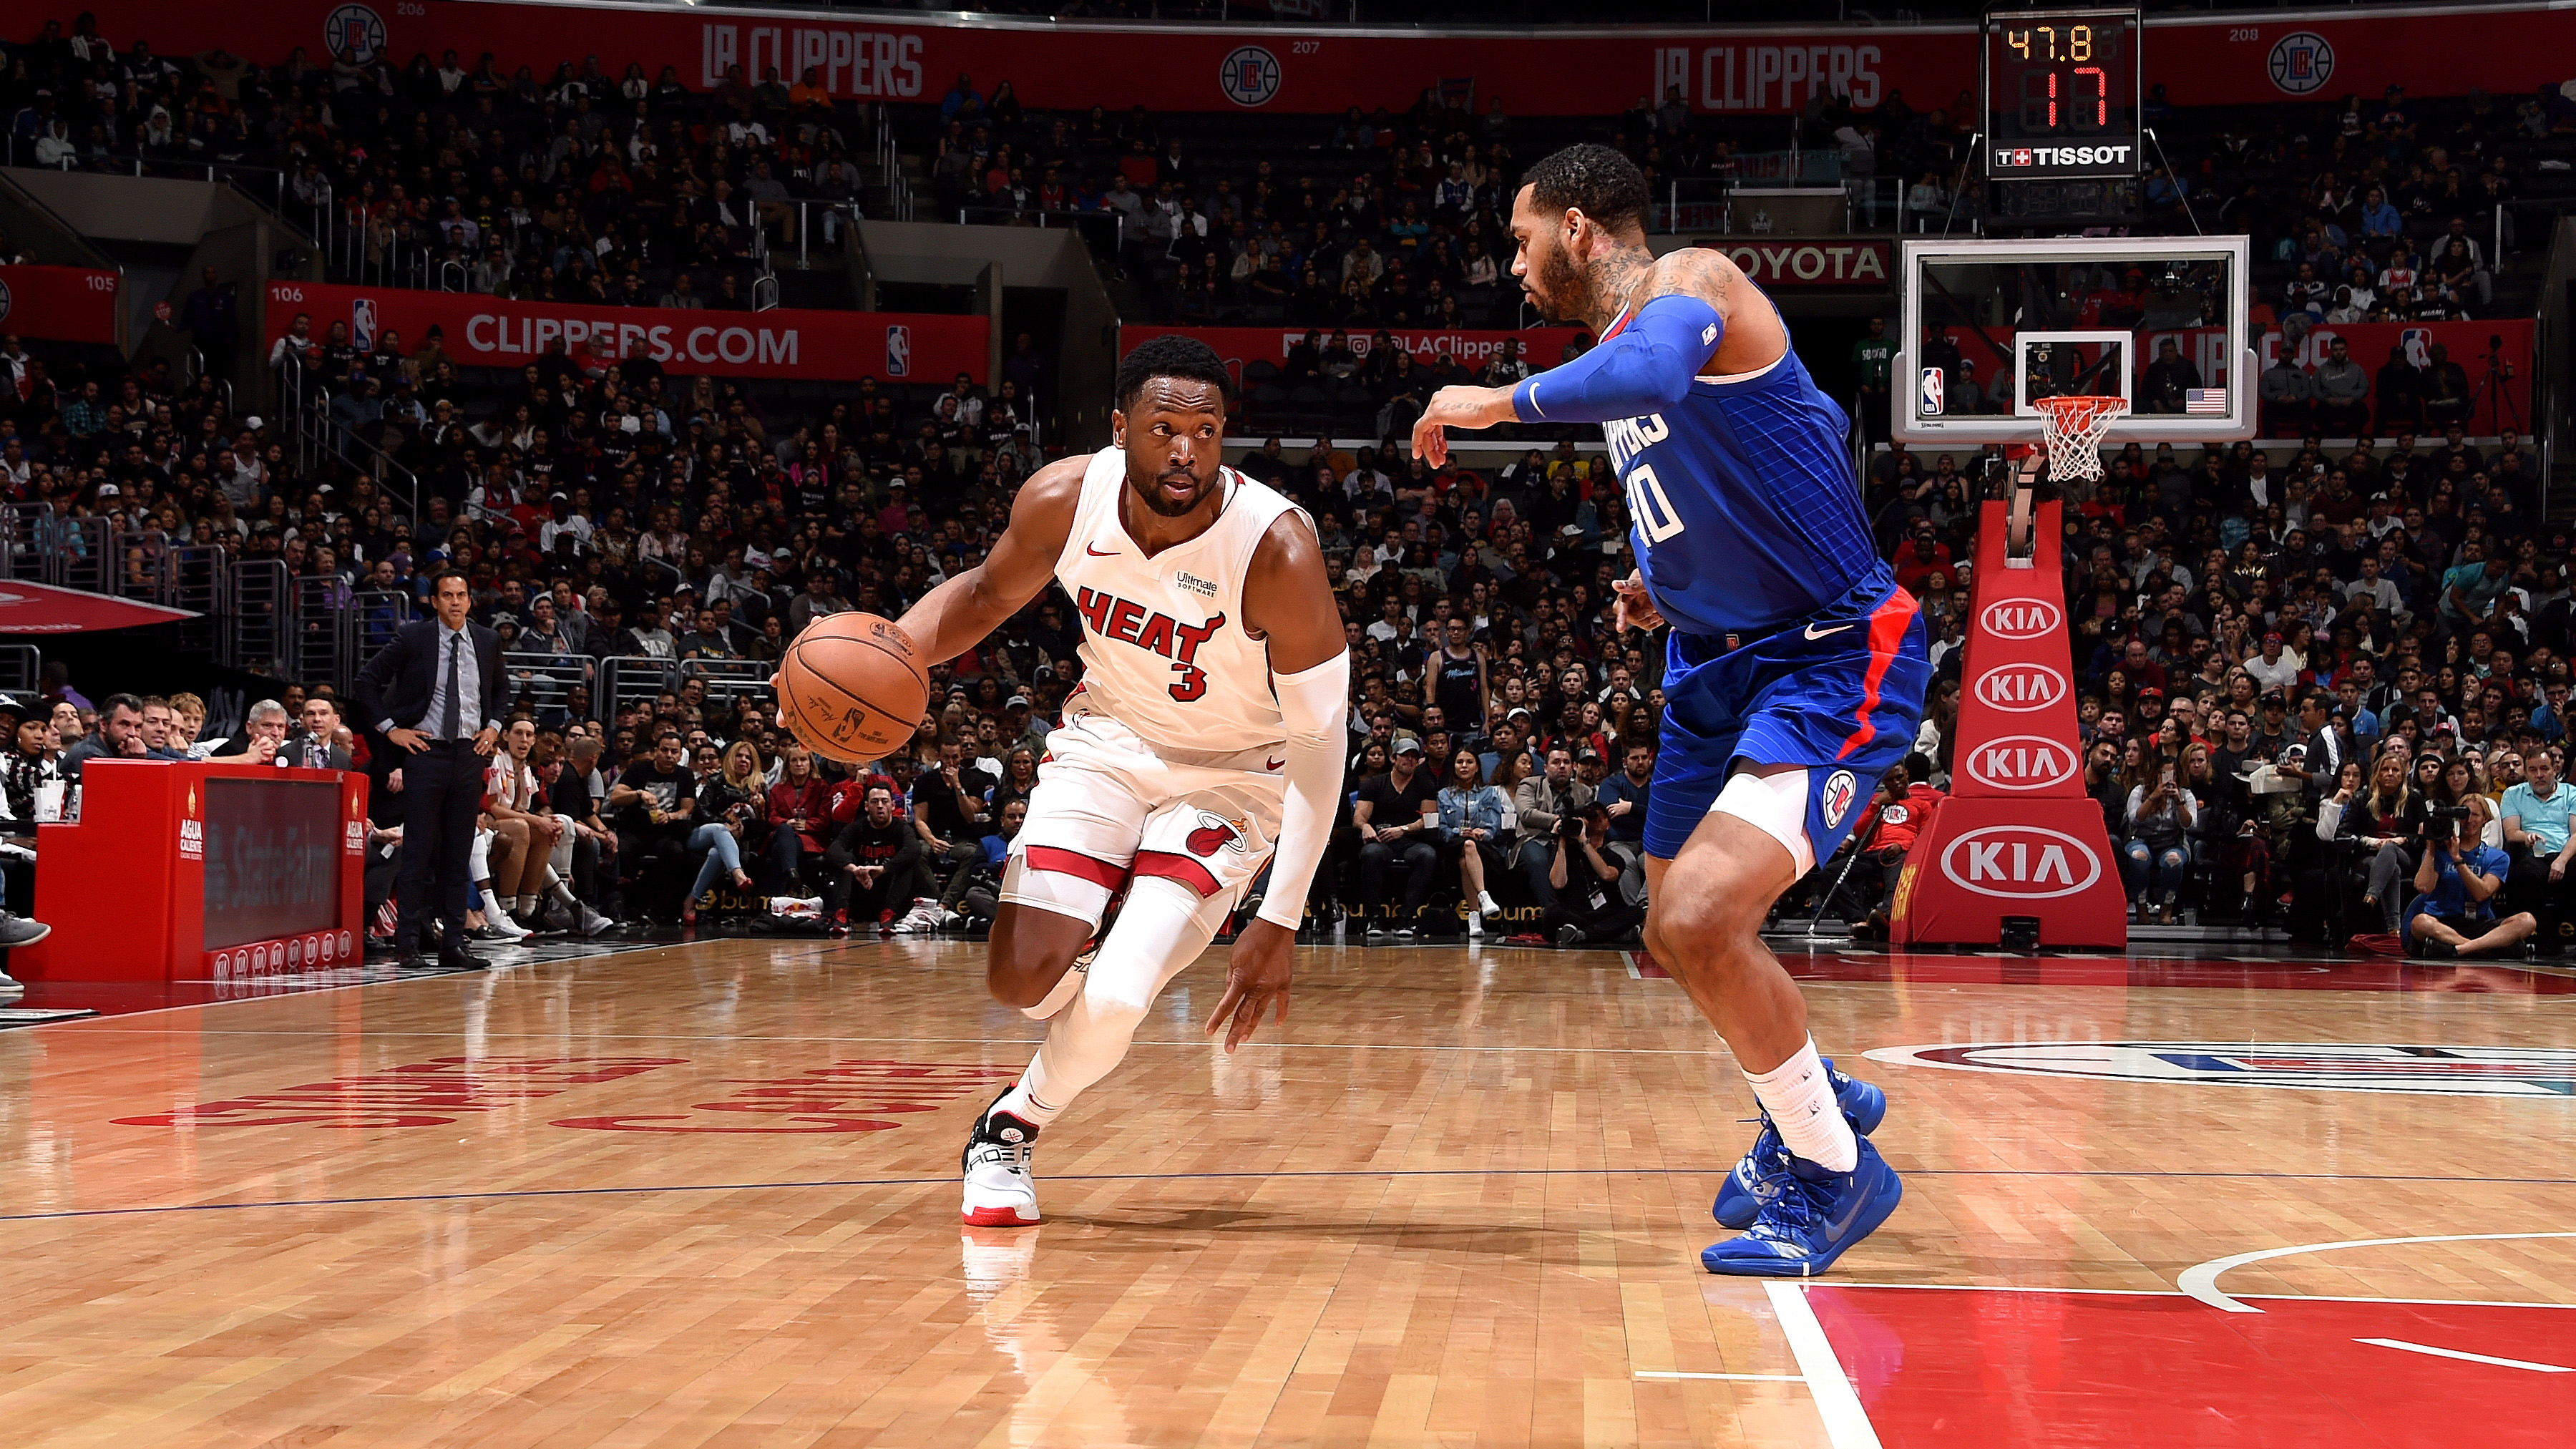 GAME RECAP: Heat 121, Clippers 98